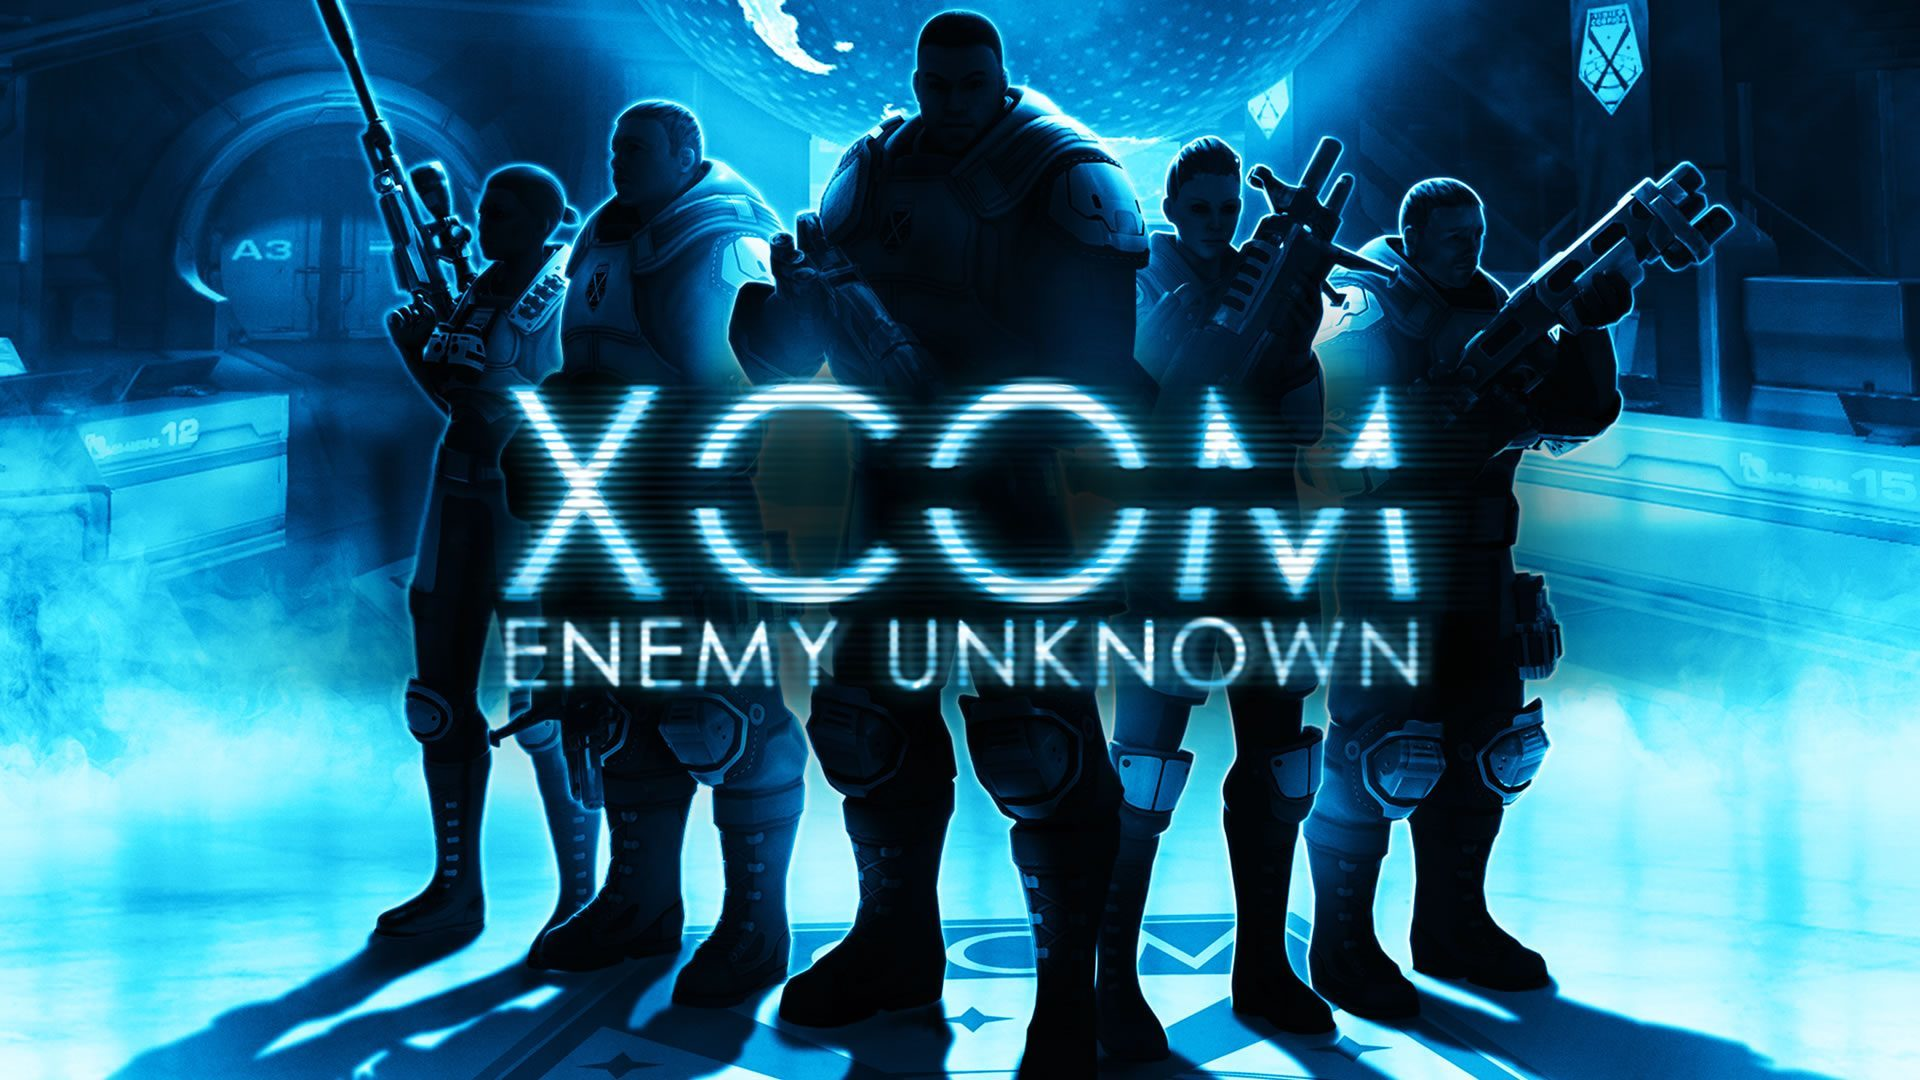 Отличная пошаговая стратегия XCOM: Enemy unknown за $1 - 1